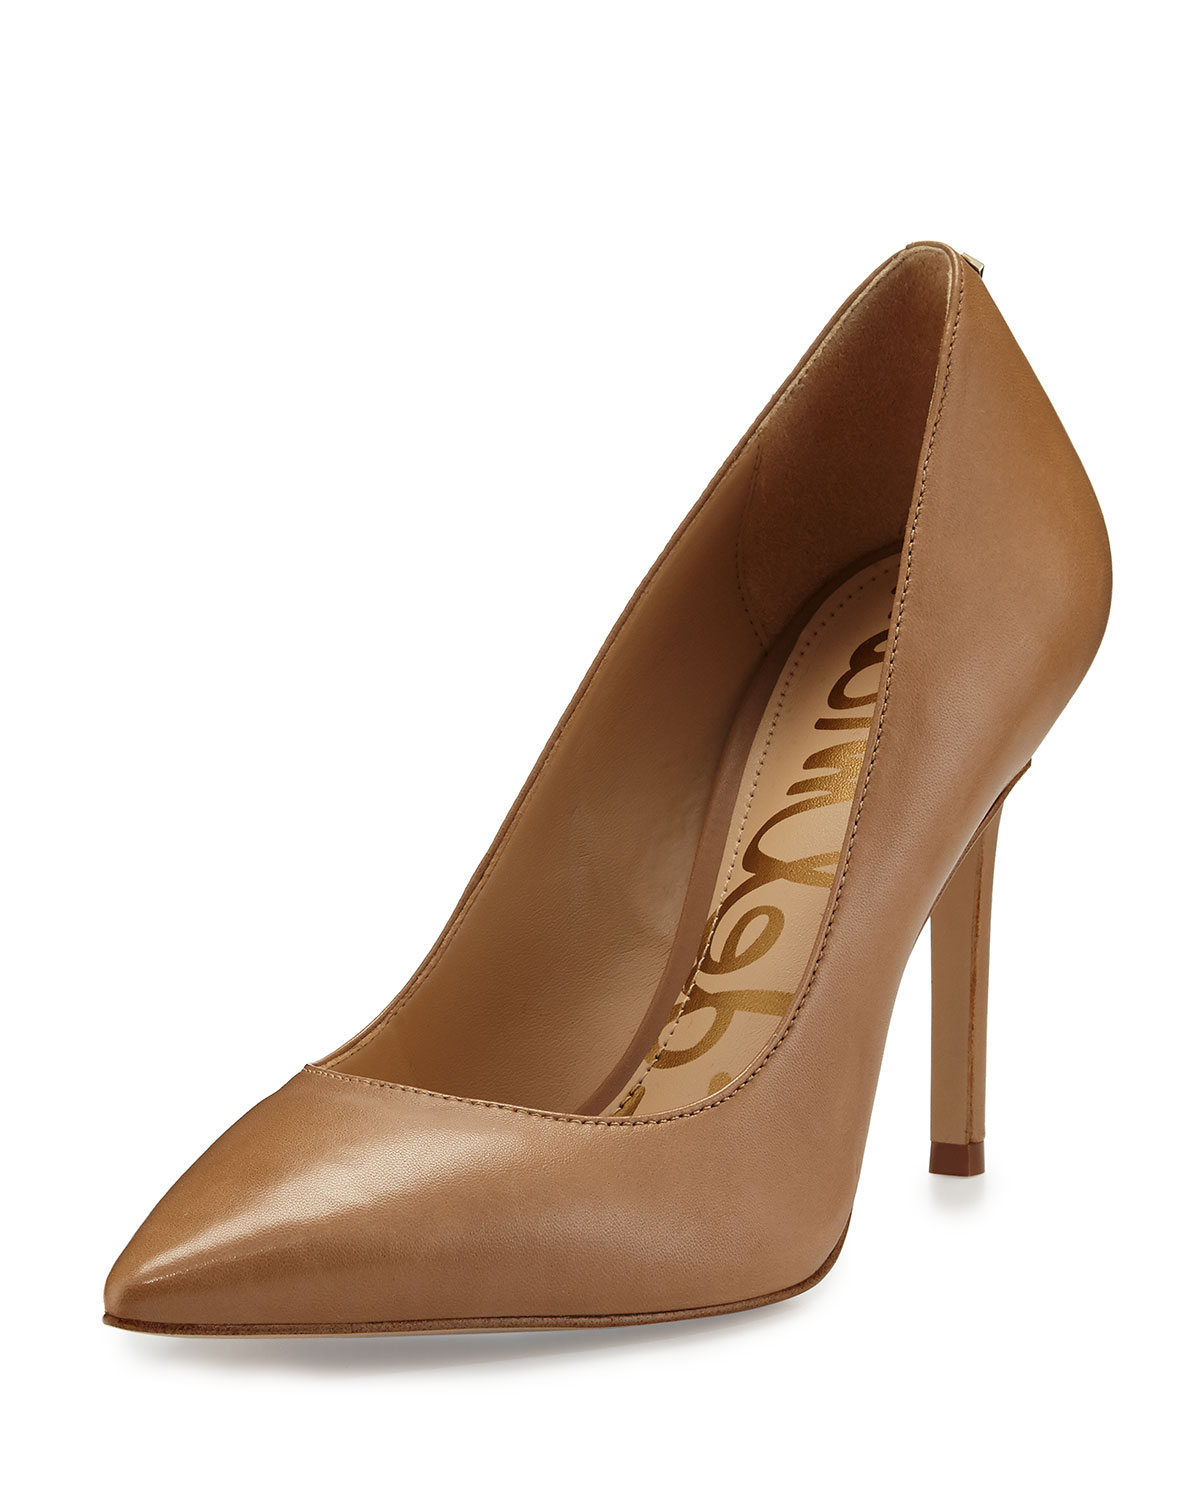 86a0b31d8 Sam Edelman Hazel Pointed-Toe Leather Pump